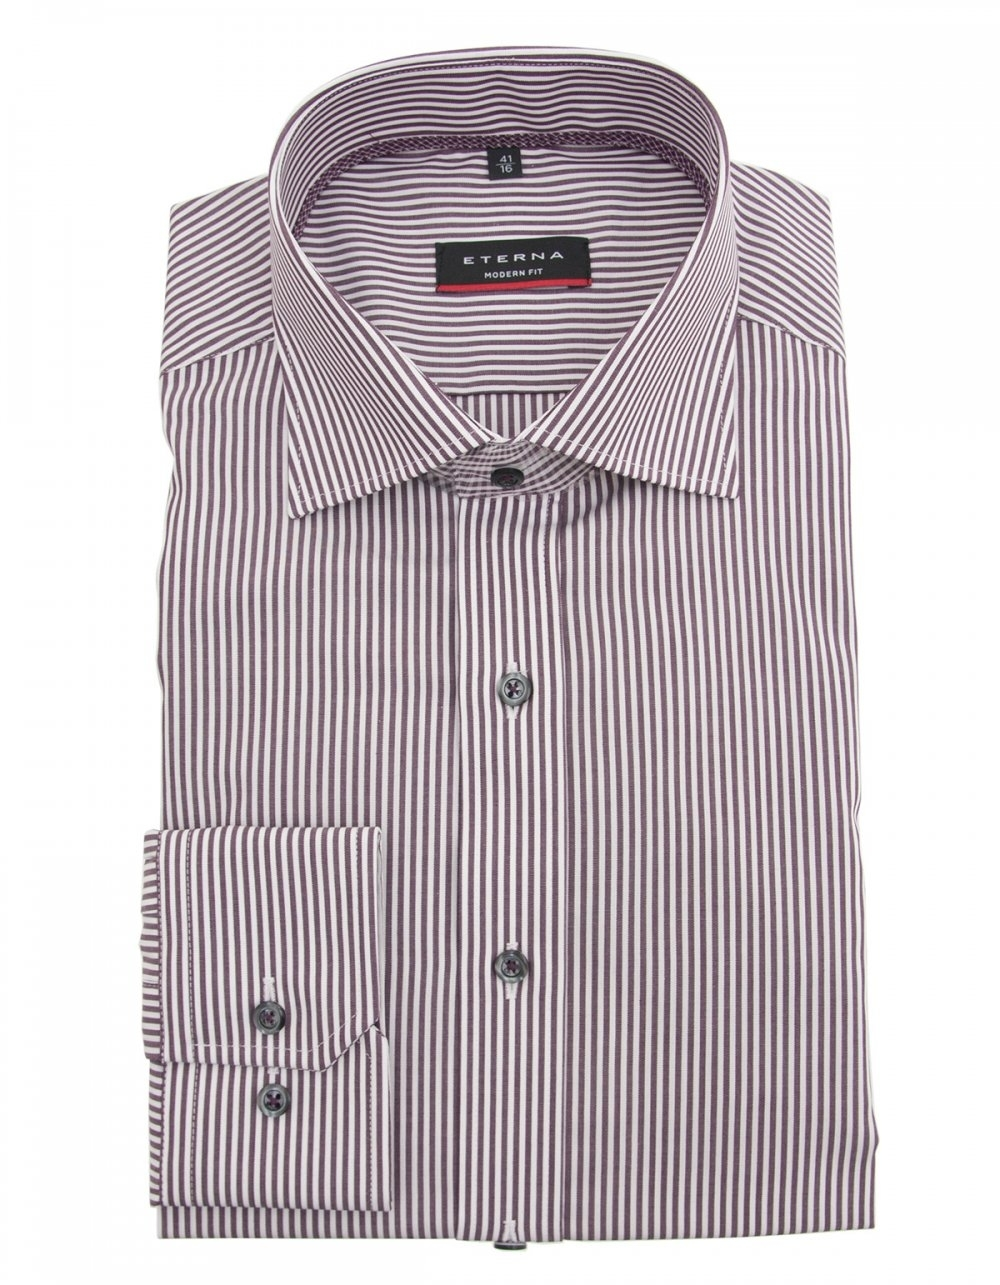 Eterna wine striped shirt